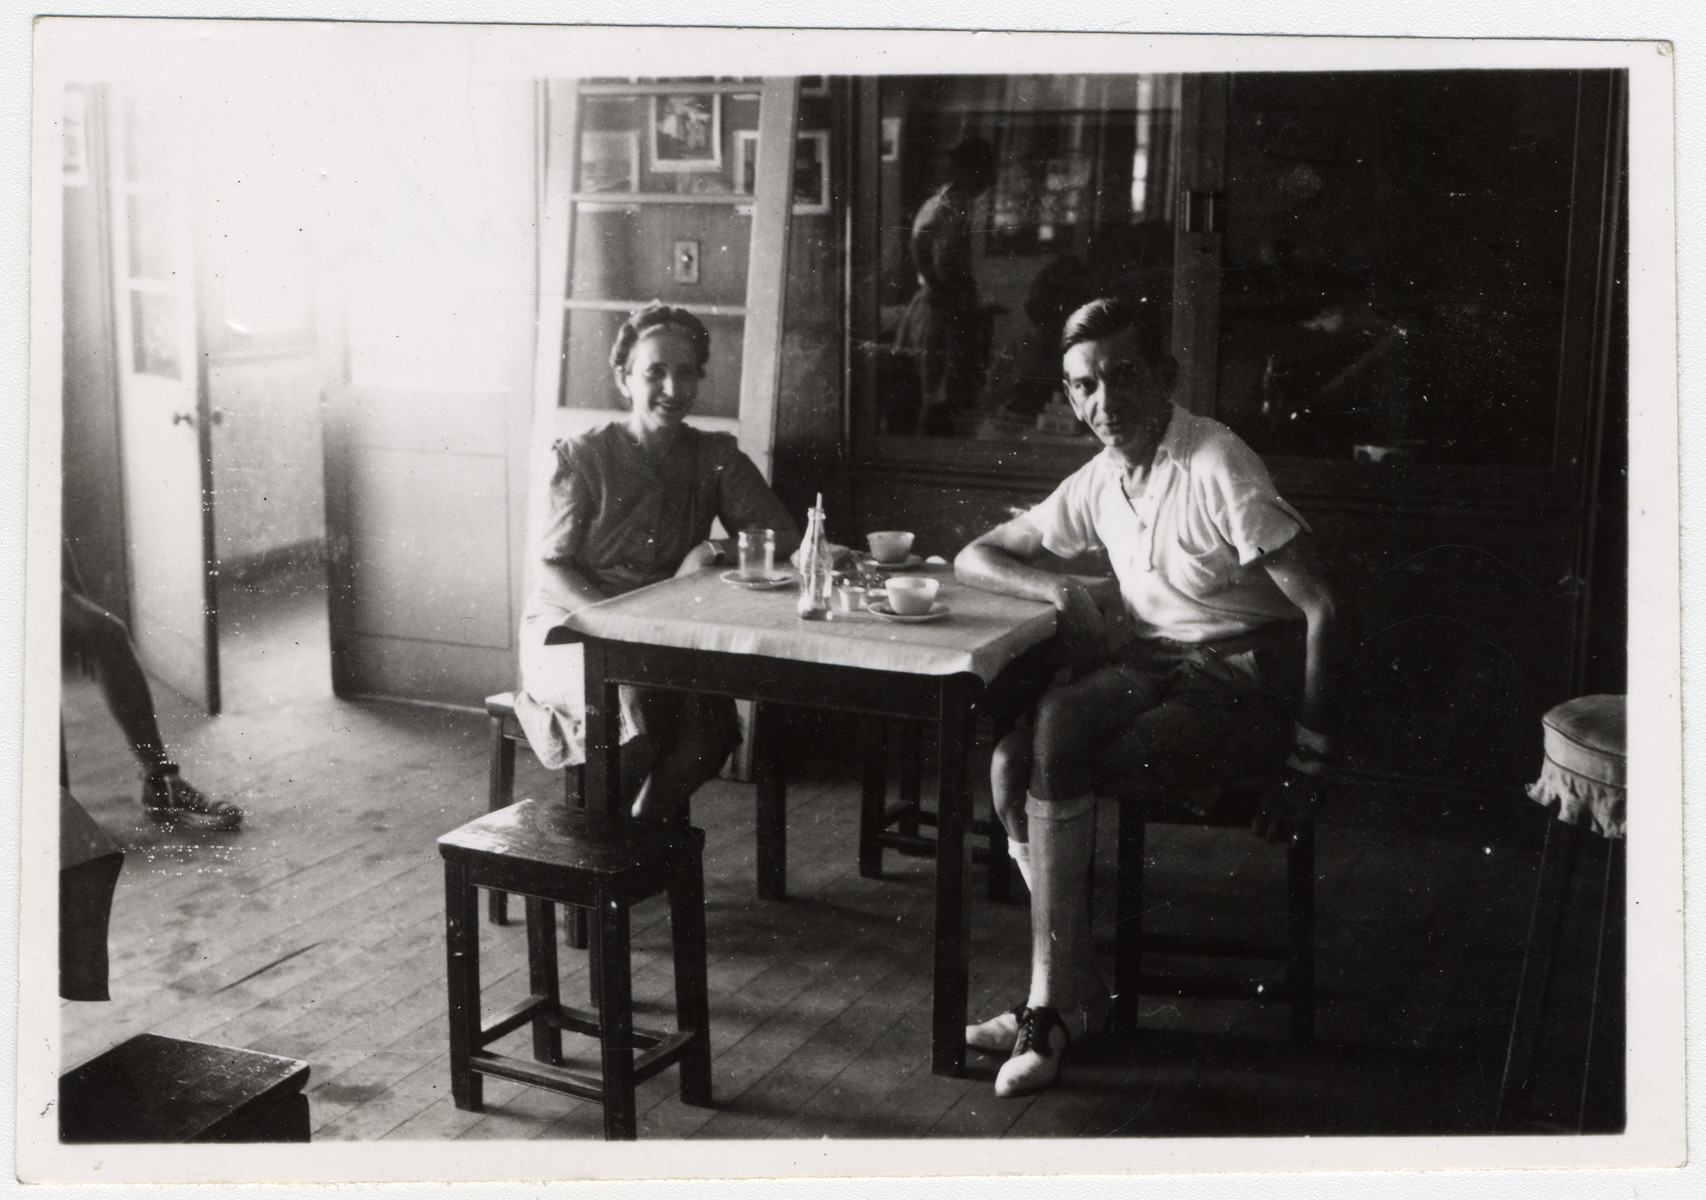 Gertrud and Alfred Heller sit at a table inside the Shanghai Jewish Community Center.